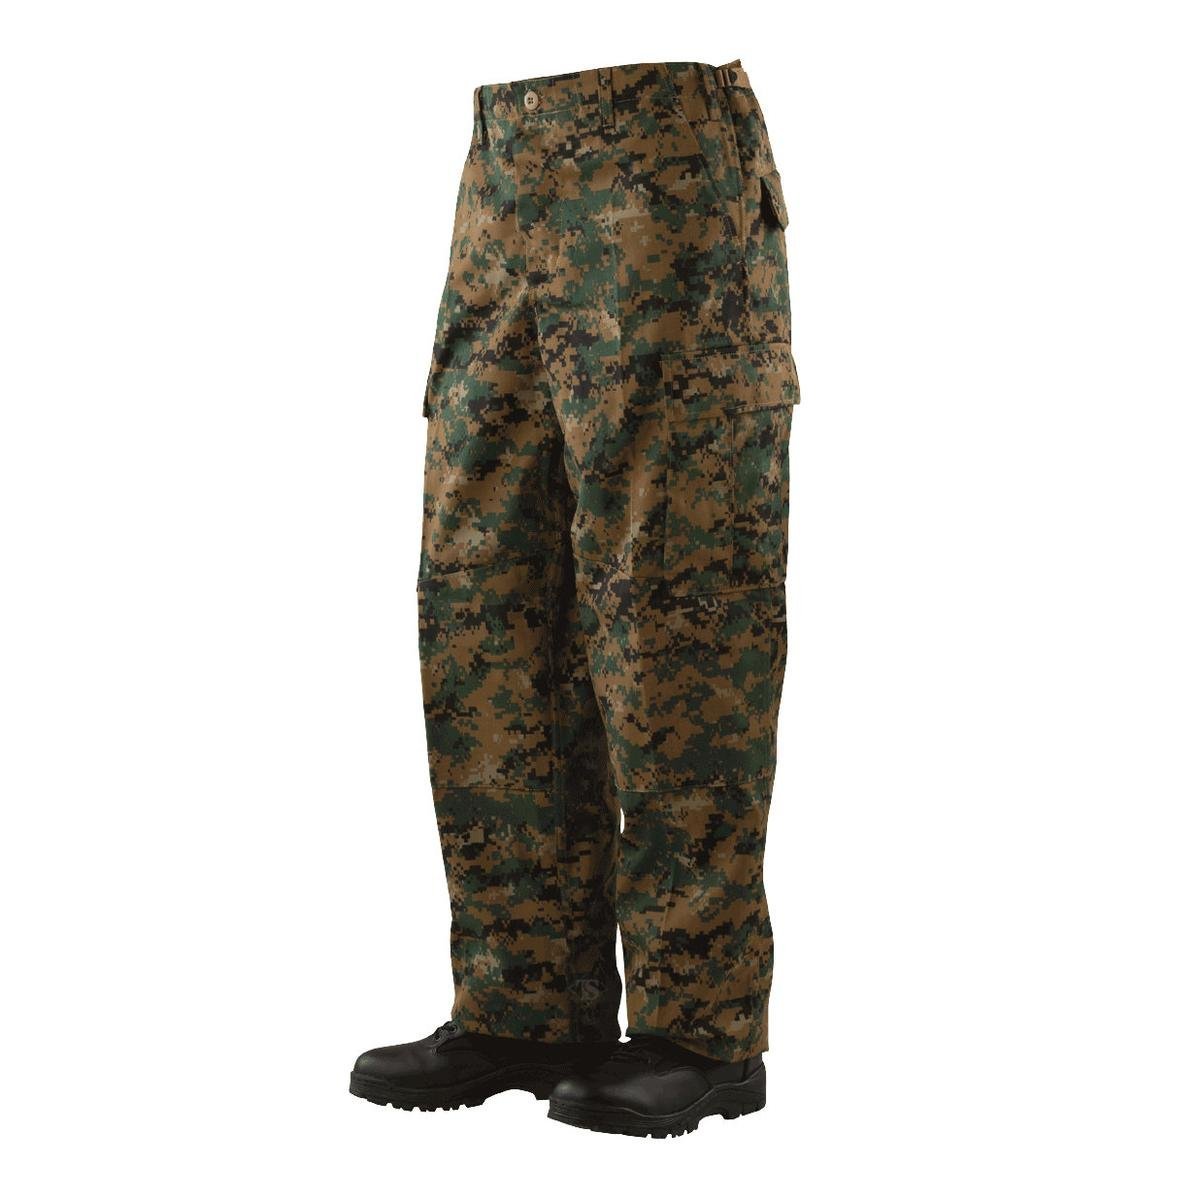 Tru-Spec Battle Trouser Digital Woodland